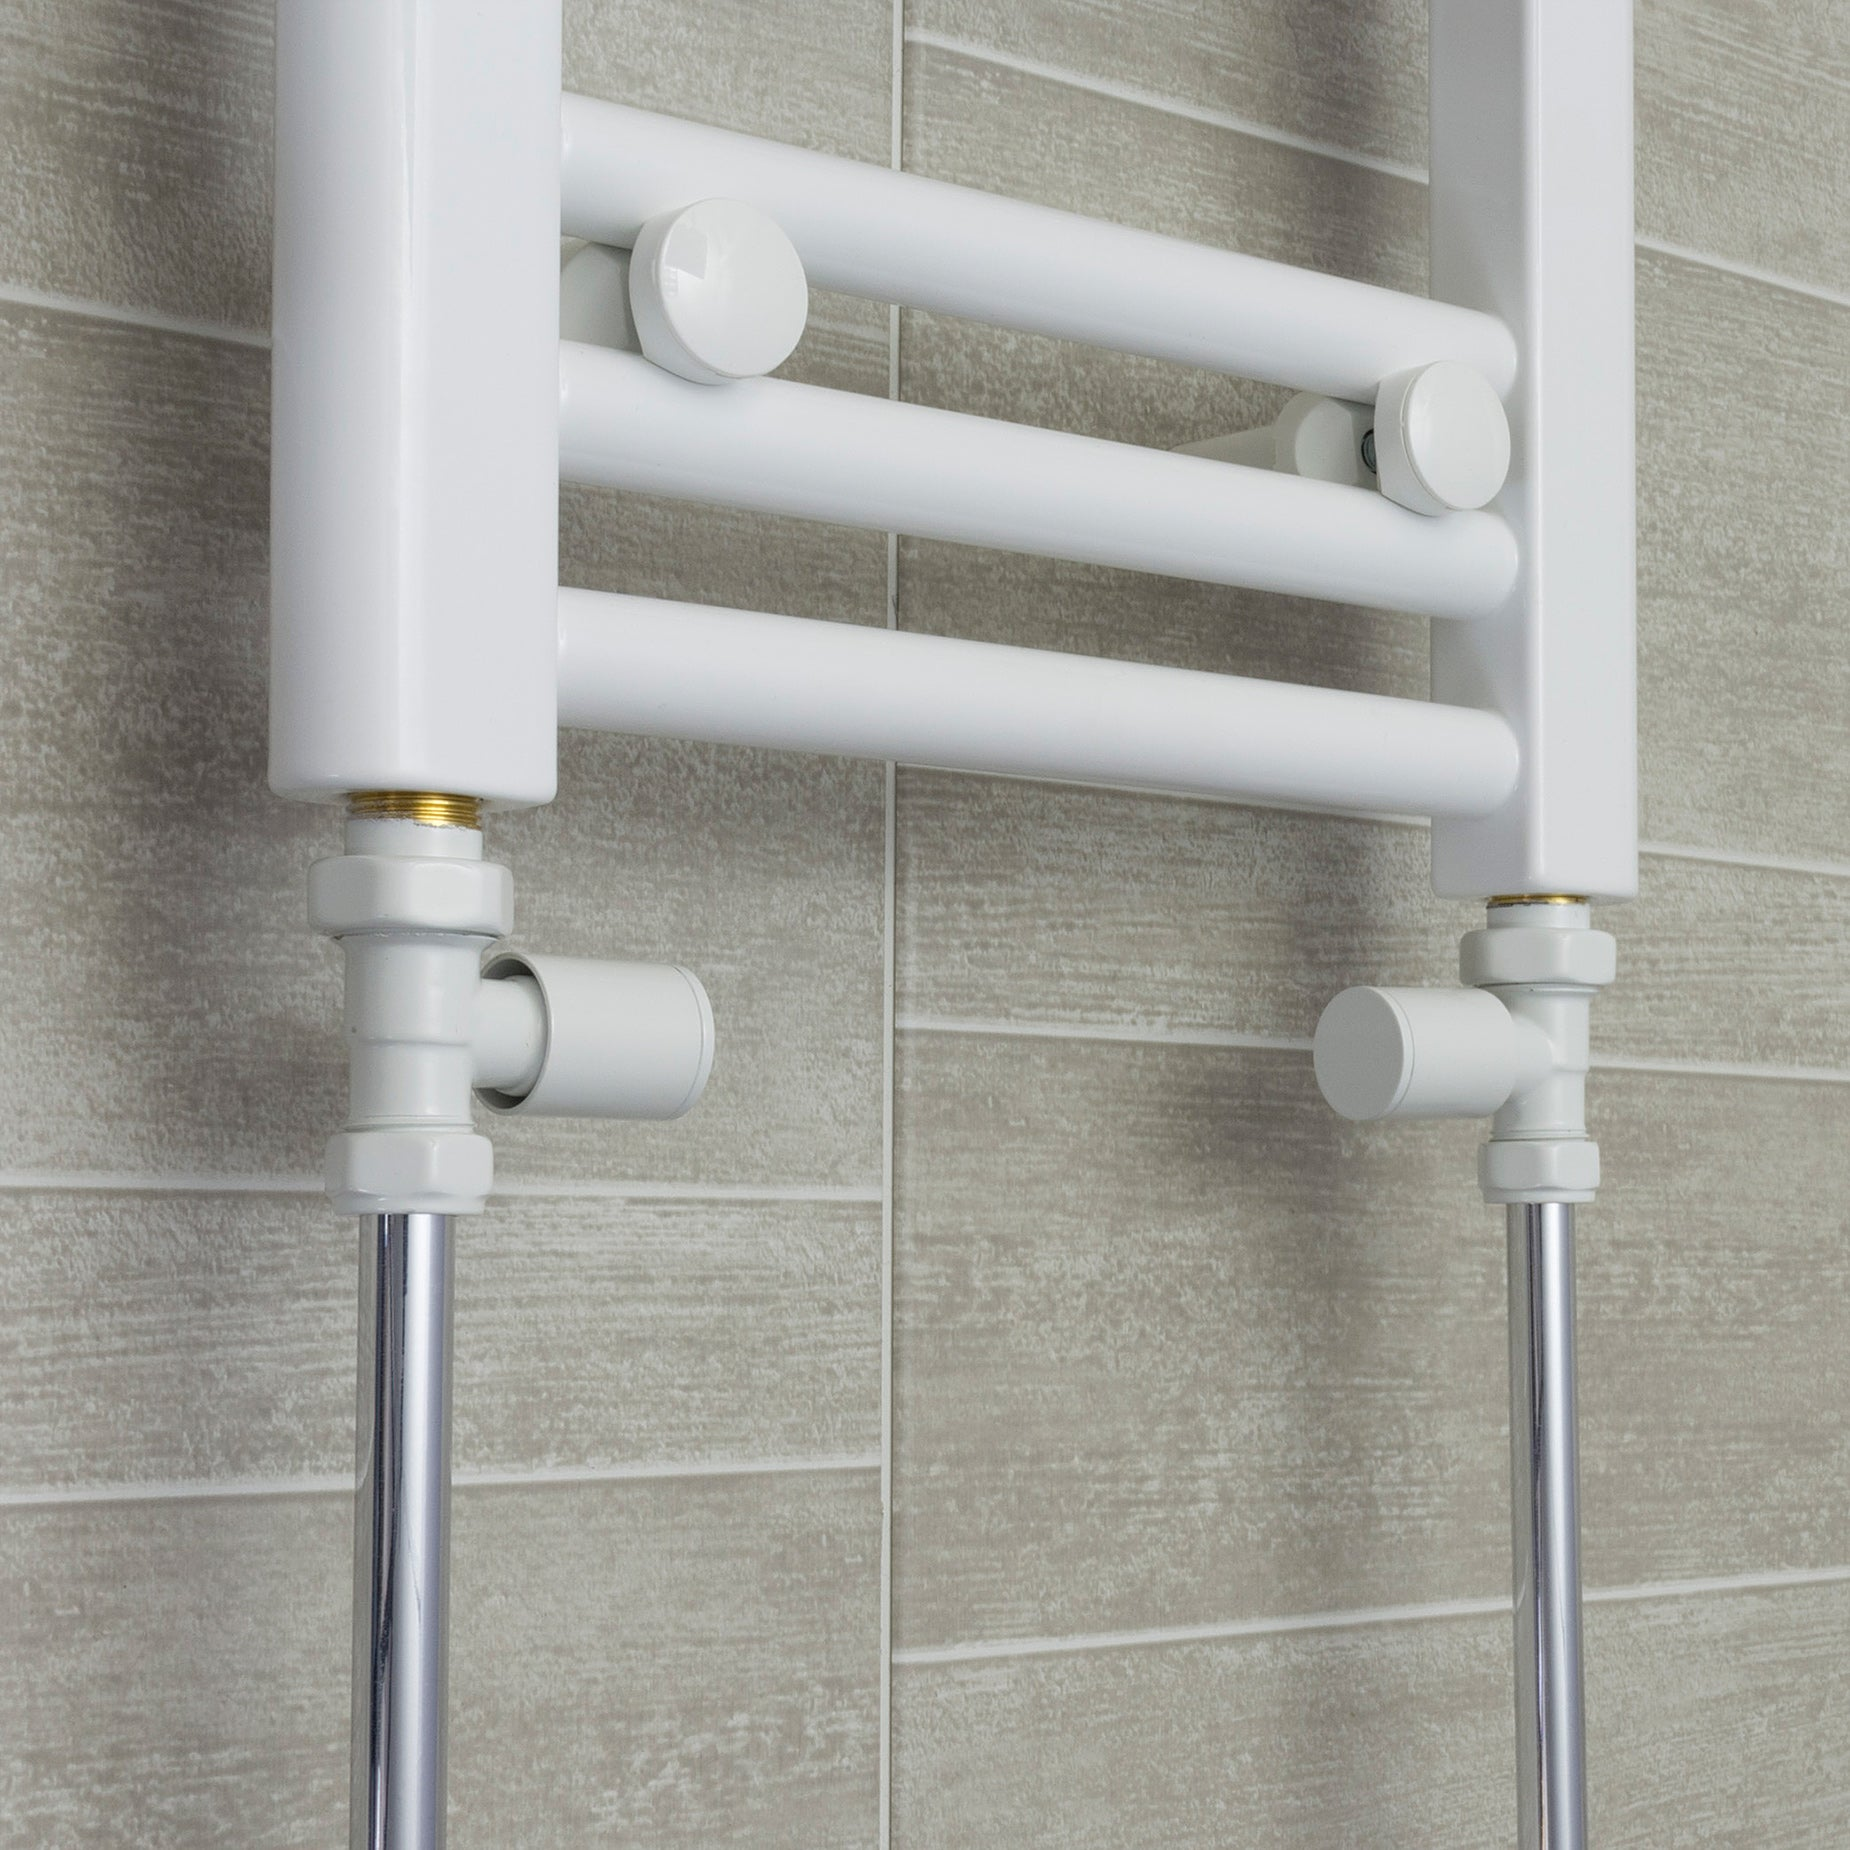 750mm Wide 600mm High Flat White Heated Towel Rail Radiator HTR